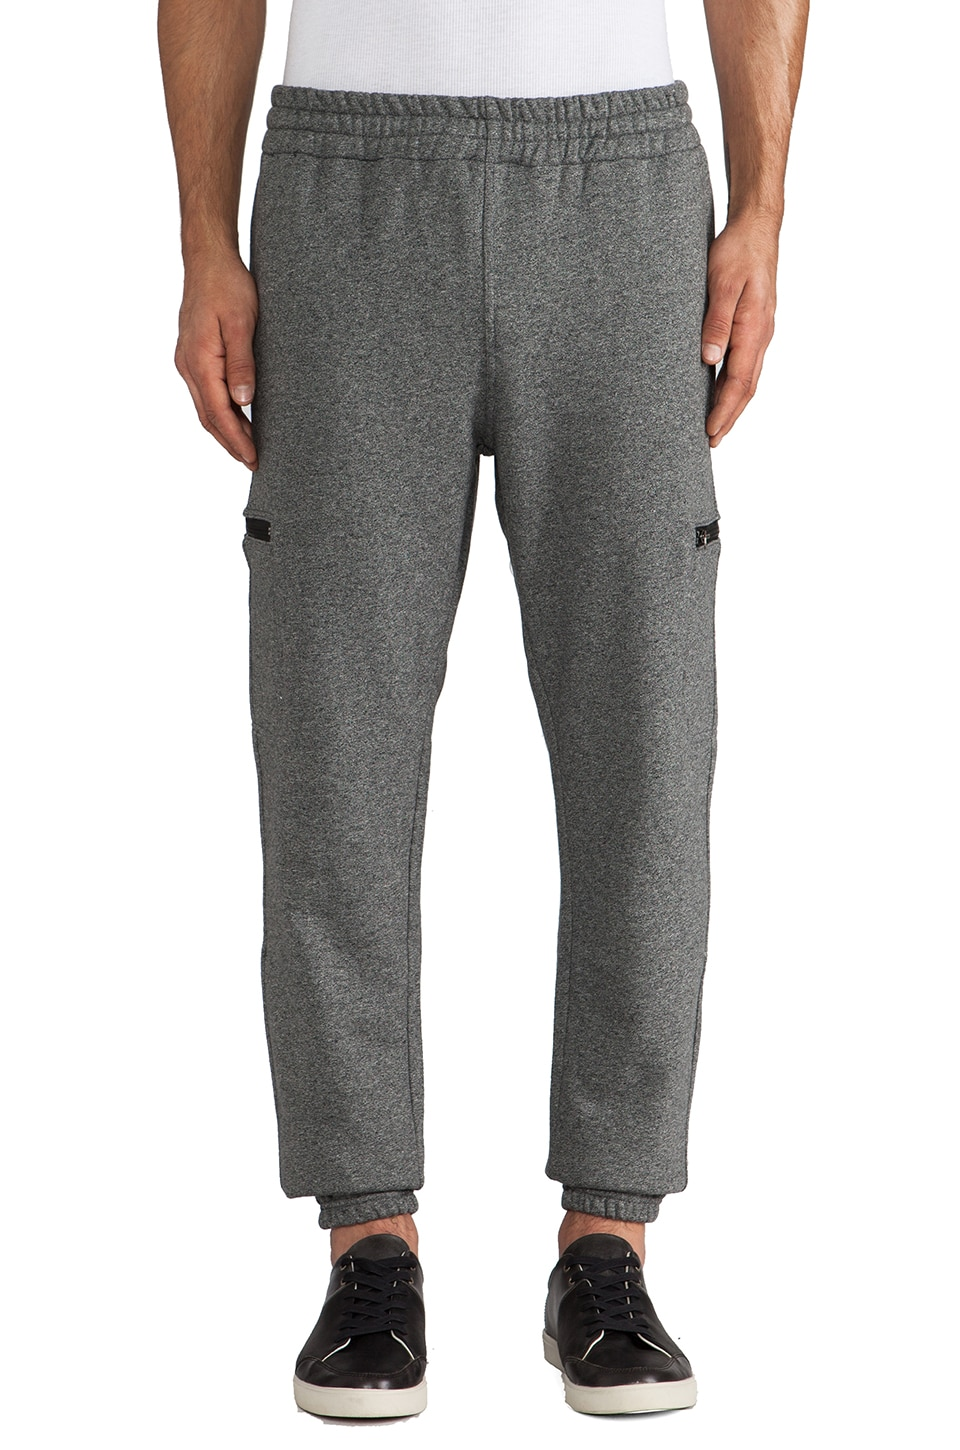 Shades of Grey by Micah Cohen Cargo Sweatpant en Gris Chiné